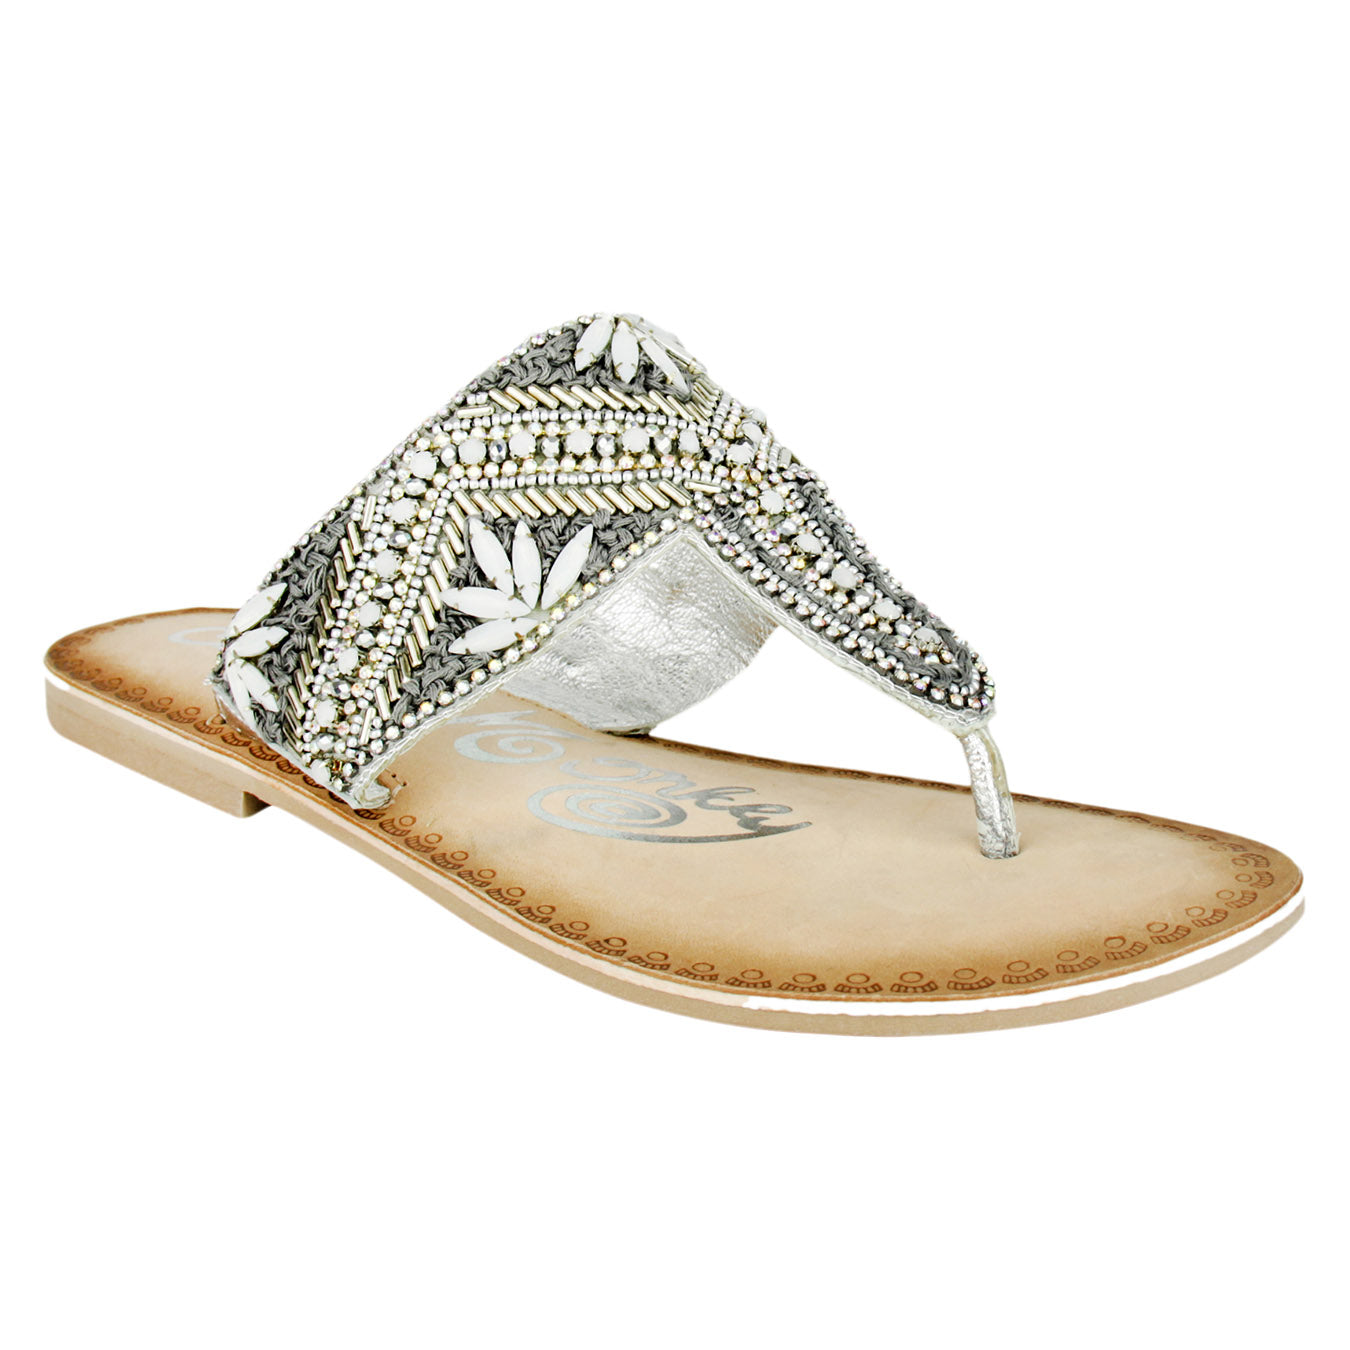 naughty_monkey_sandal_slip-on_embellished_women's_flat_amare_silver